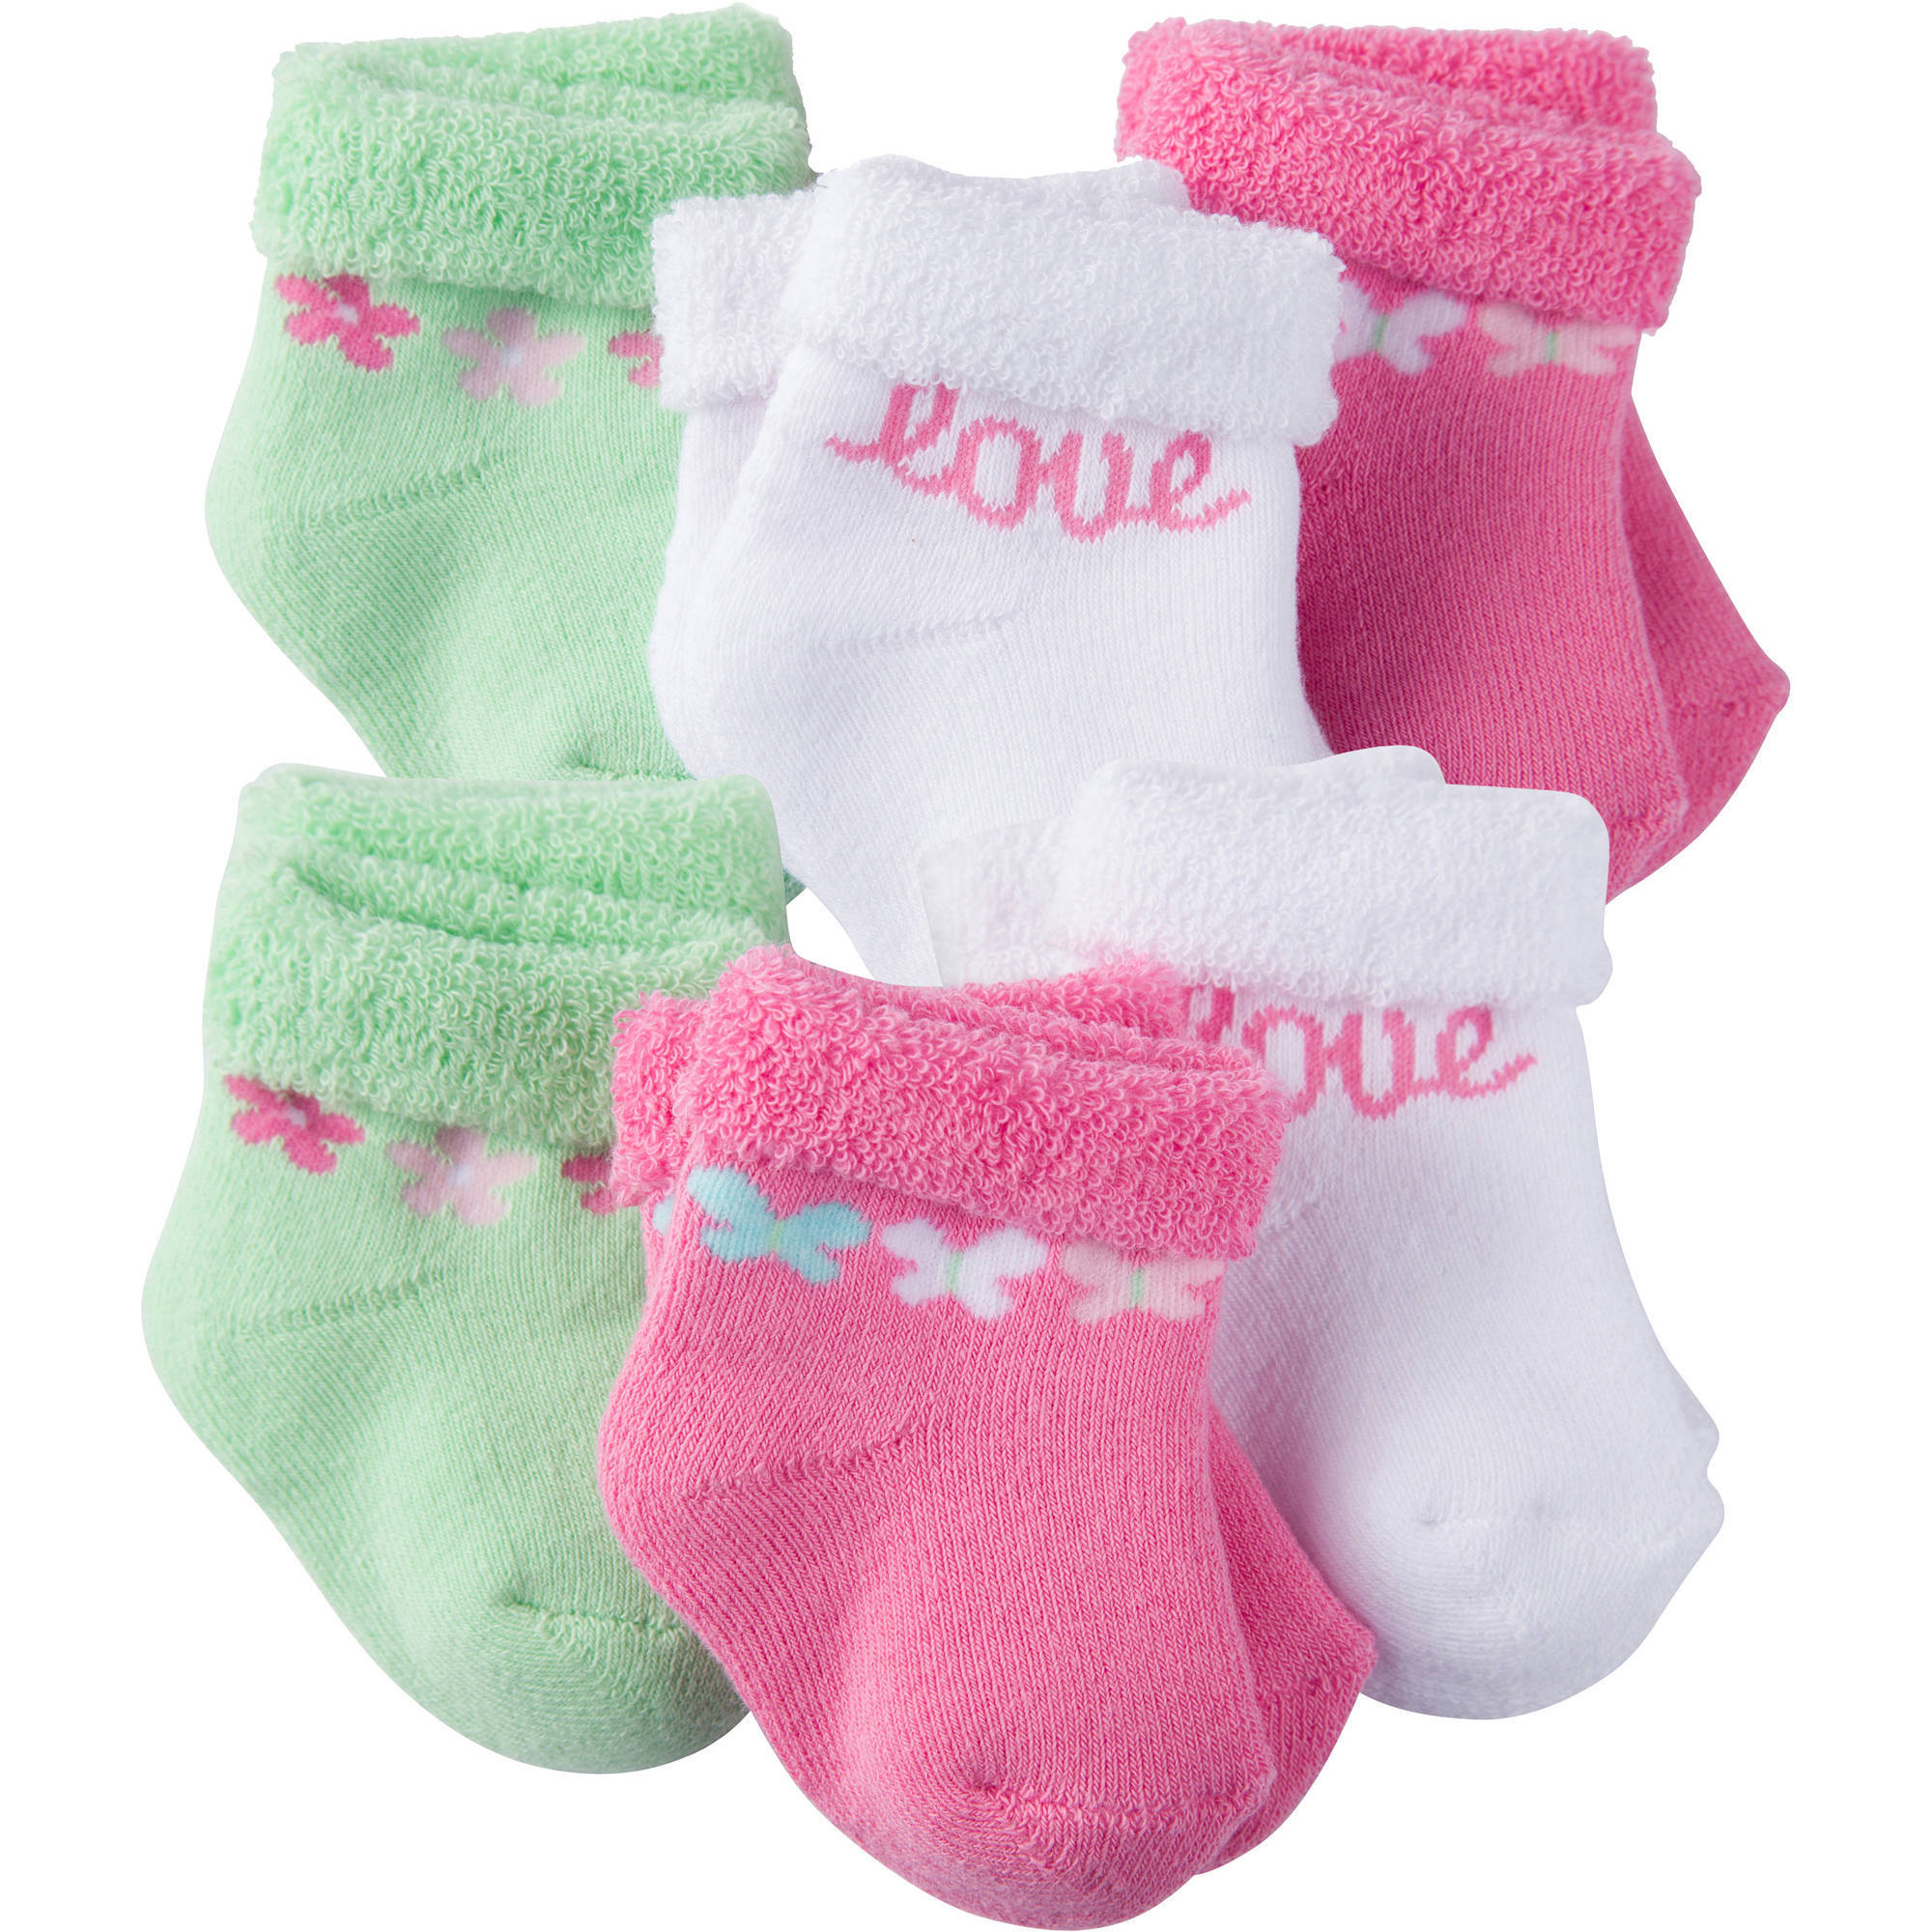 Gerber Newborn Baby Girl Terry Bootie Socks, 6-Pack